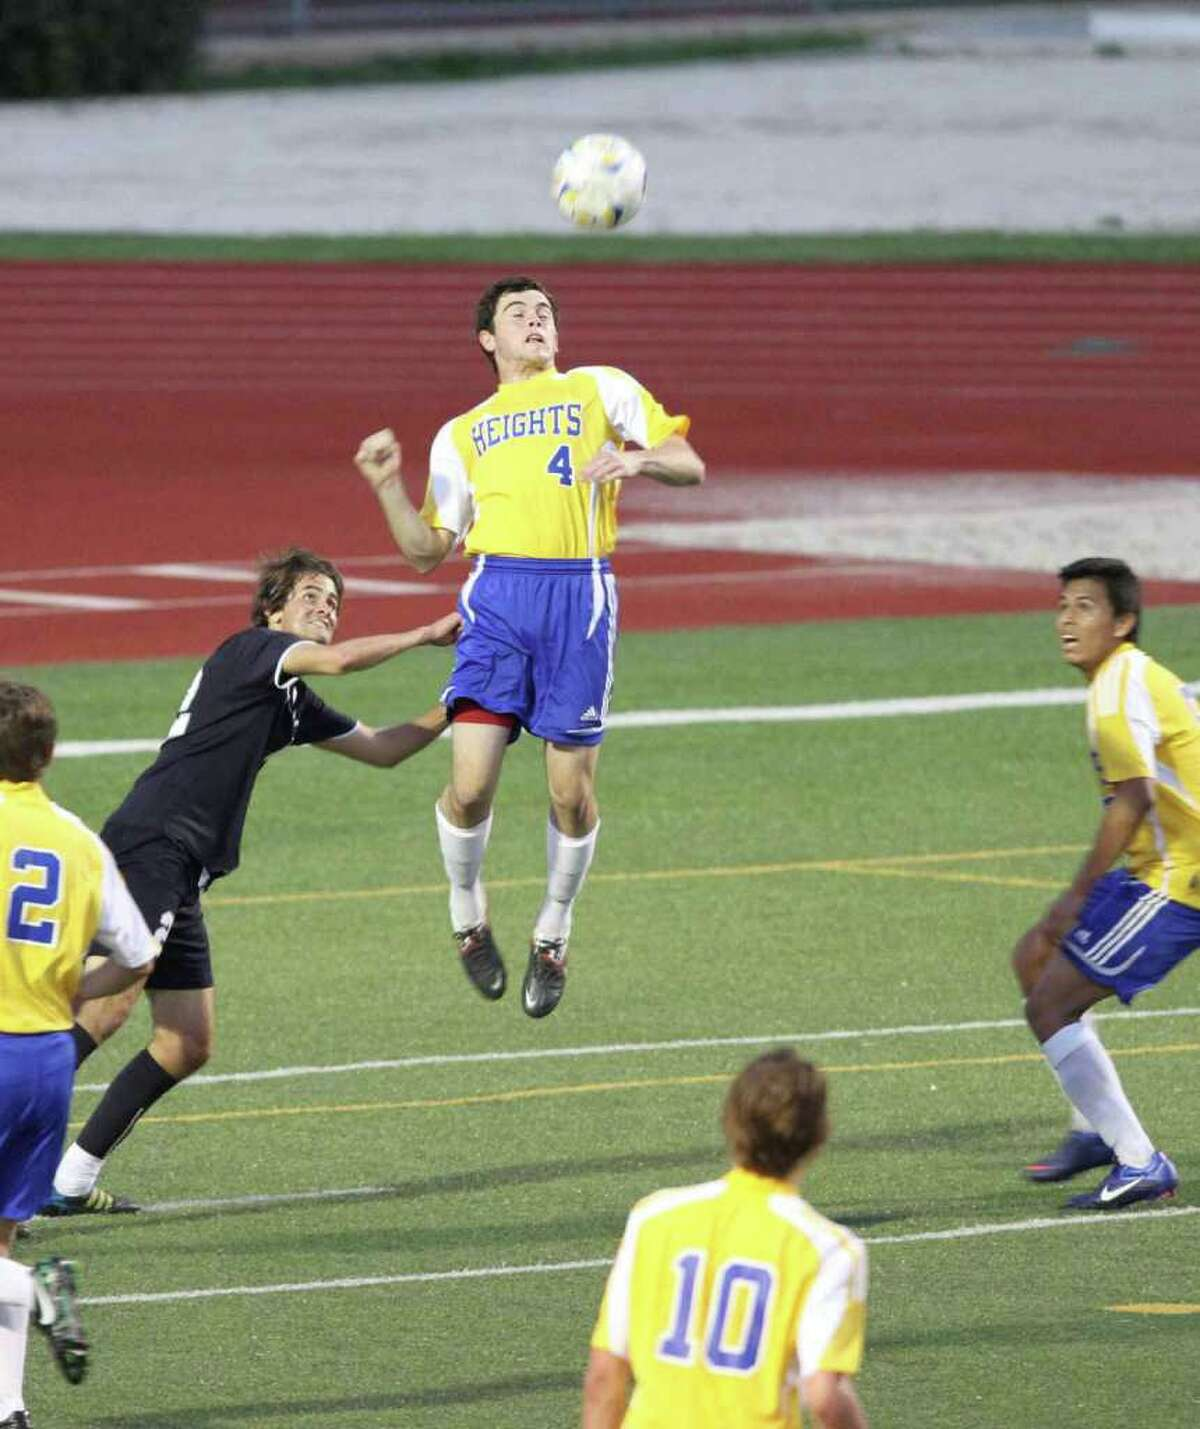 Alamo Heights senior Alek Strimple clears the ball away from Boerne Champion's Matt Dorsey. No. 6 Heights shut out the No. 5 Chargers, 3-0, March 13 at Orem Stadium in a key district battle.